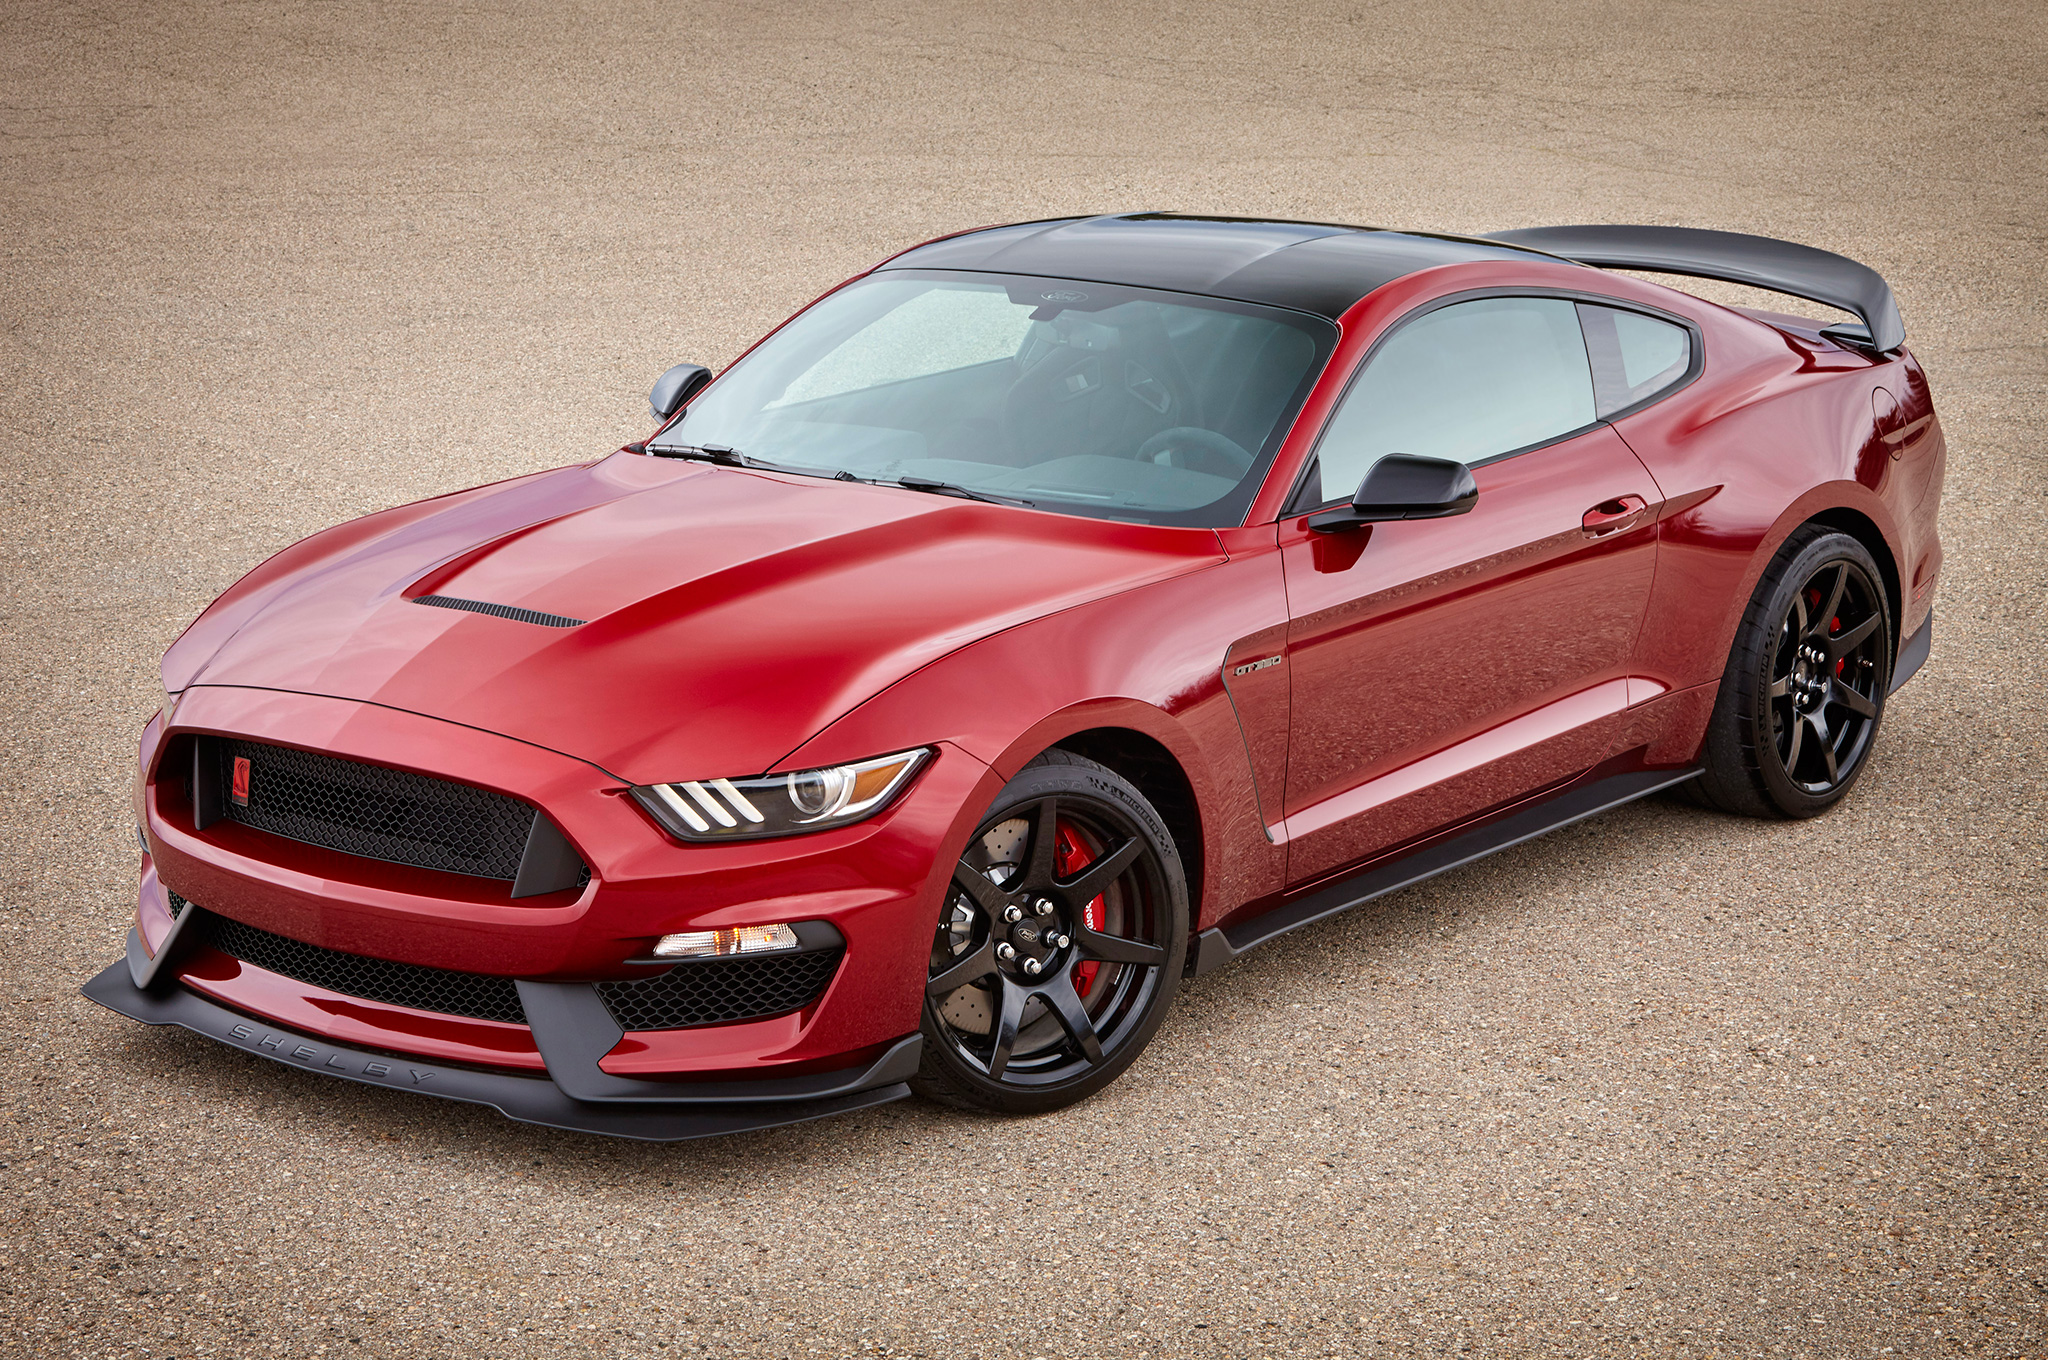 2017 Ford Shelby Gt350 #2